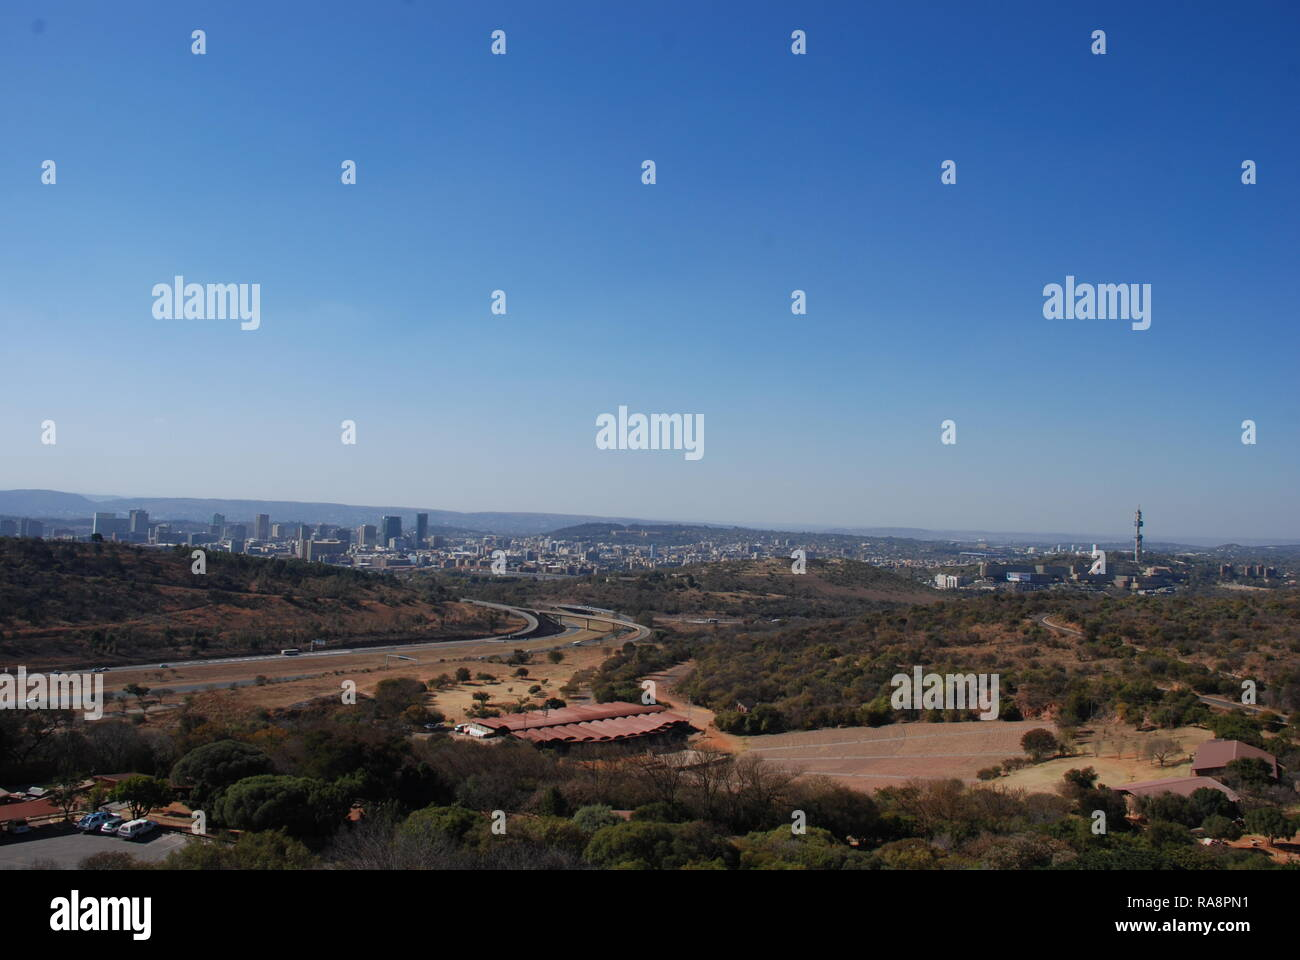 View of Pretoria from the top of the Voortrekker Monument in South Africa - Stock Image